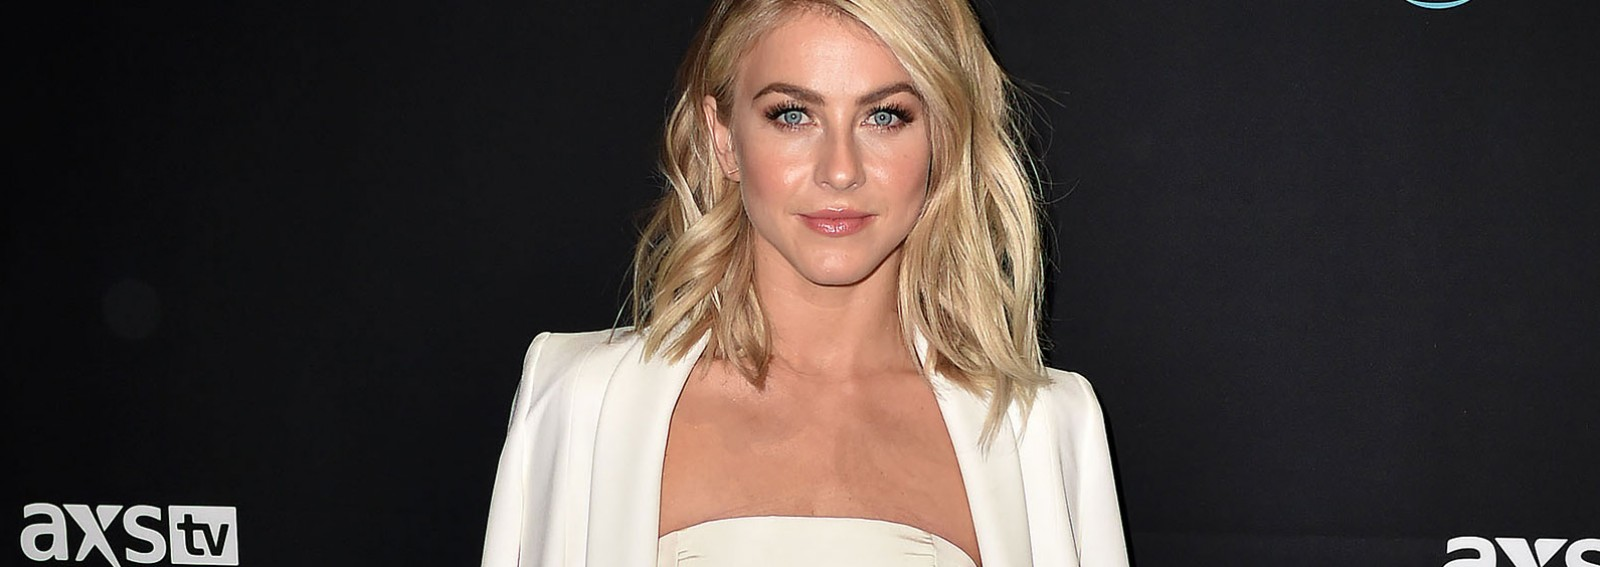 Julianne Hough makes a major fashion faux pas